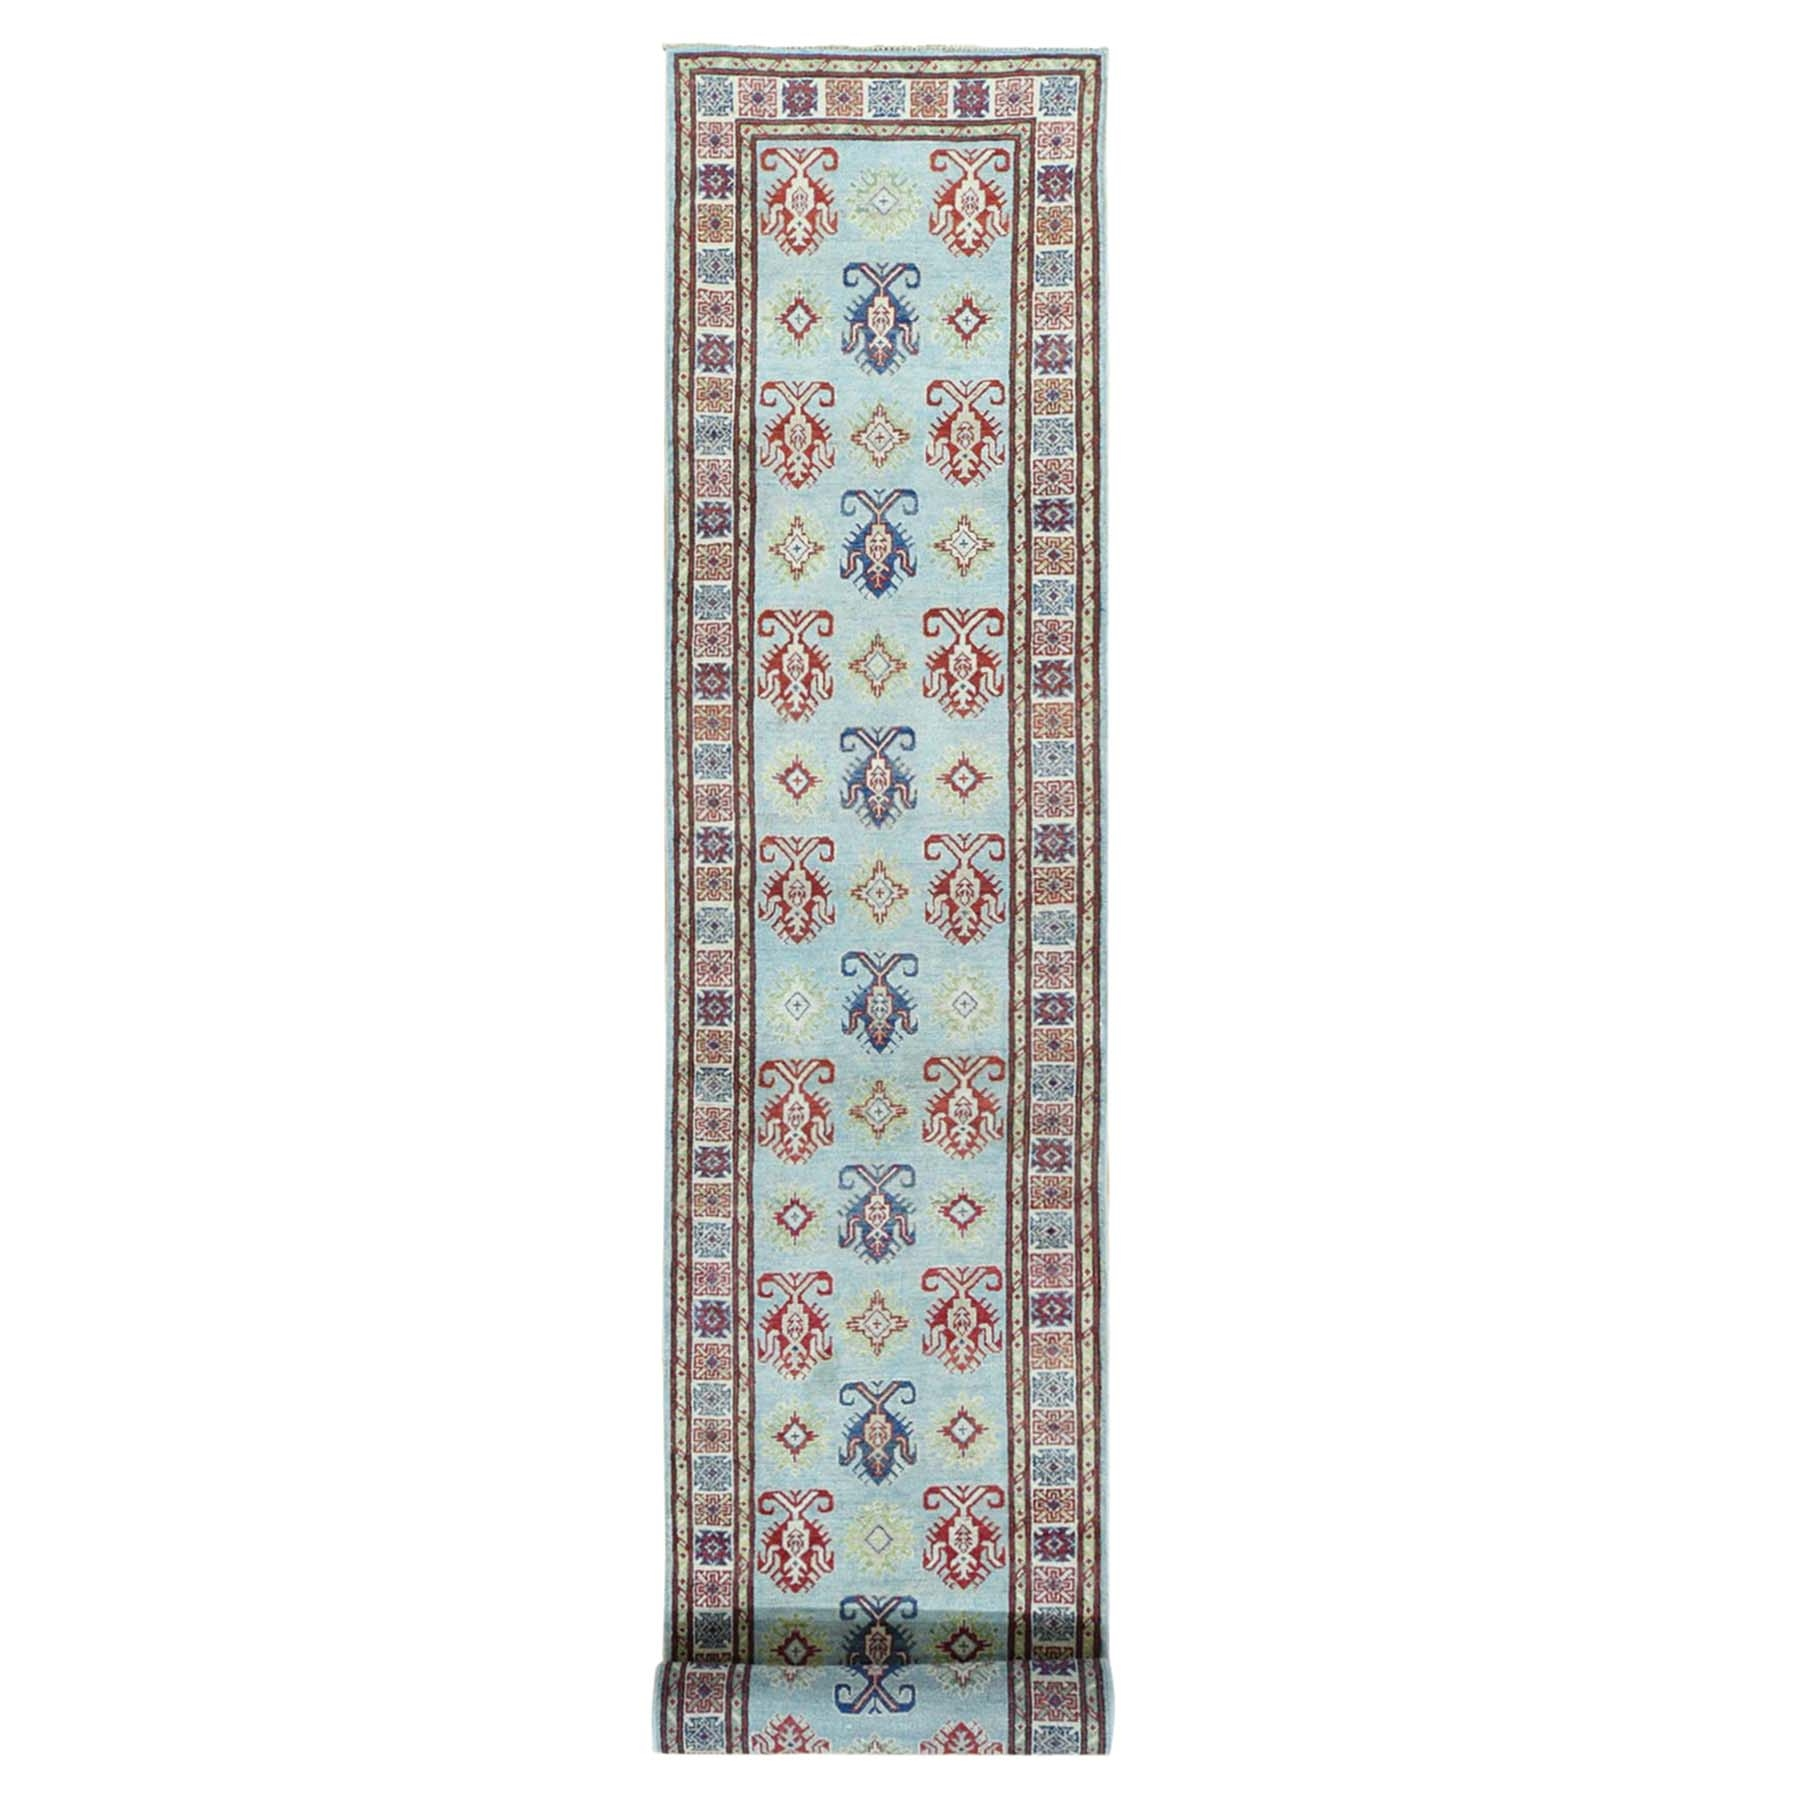 "2'8""X17'3"" Hand-Knotted Kazak Pure Wool Xl Runner Tribal Design Rug moacad9e"